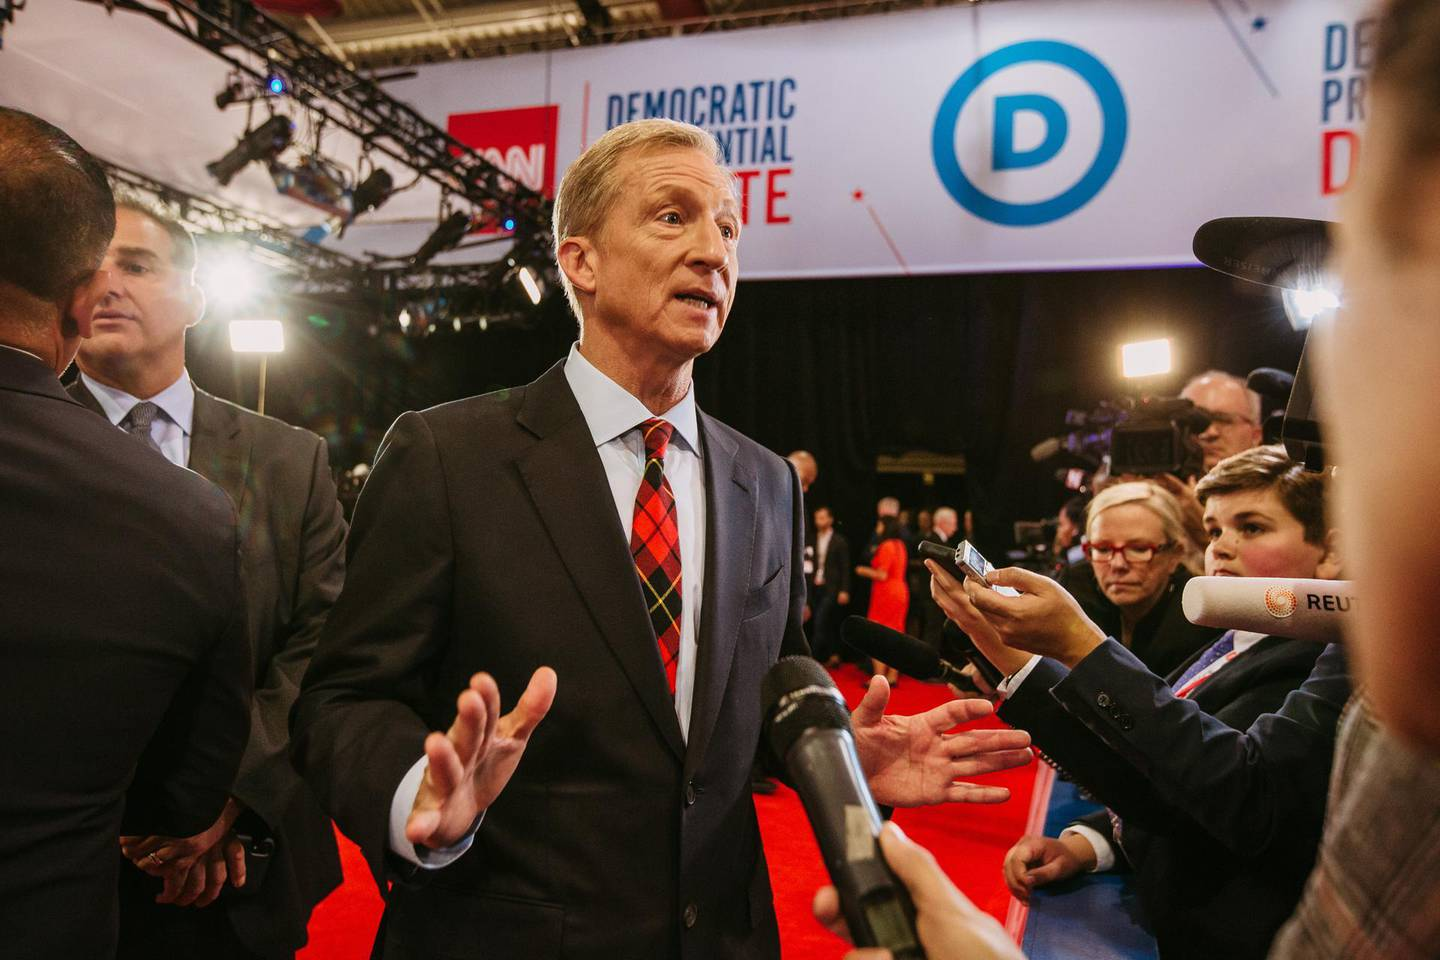 Tom Steyer, co-founder of NextGen Climate Action Committee and 2020 Democratic presidential candidate, speaks with members of the media in the spin room after the Democratic presidential candidate debate in Westerville, Ohio, U.S., on Tuesday, Oct. 15, 2019. Democratic presidential candidates vowed to rein in dominant tech companies through tougher antitrust enforcement, complaining that companies likeFacebook Inc.andAmazon.com Inc.are too big and powerful. Photographer: Allison Farrand/Bloomberg